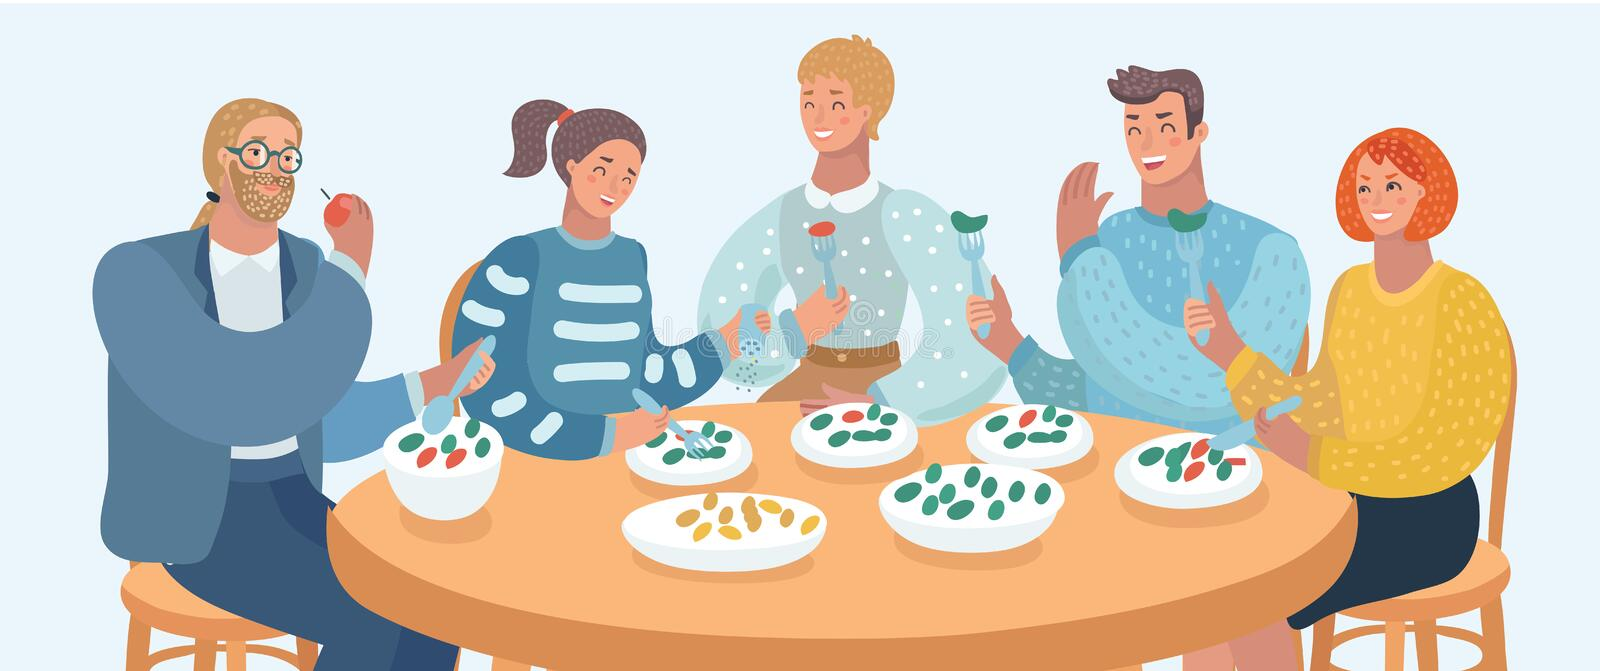 Group of people are eating royalty free illustration